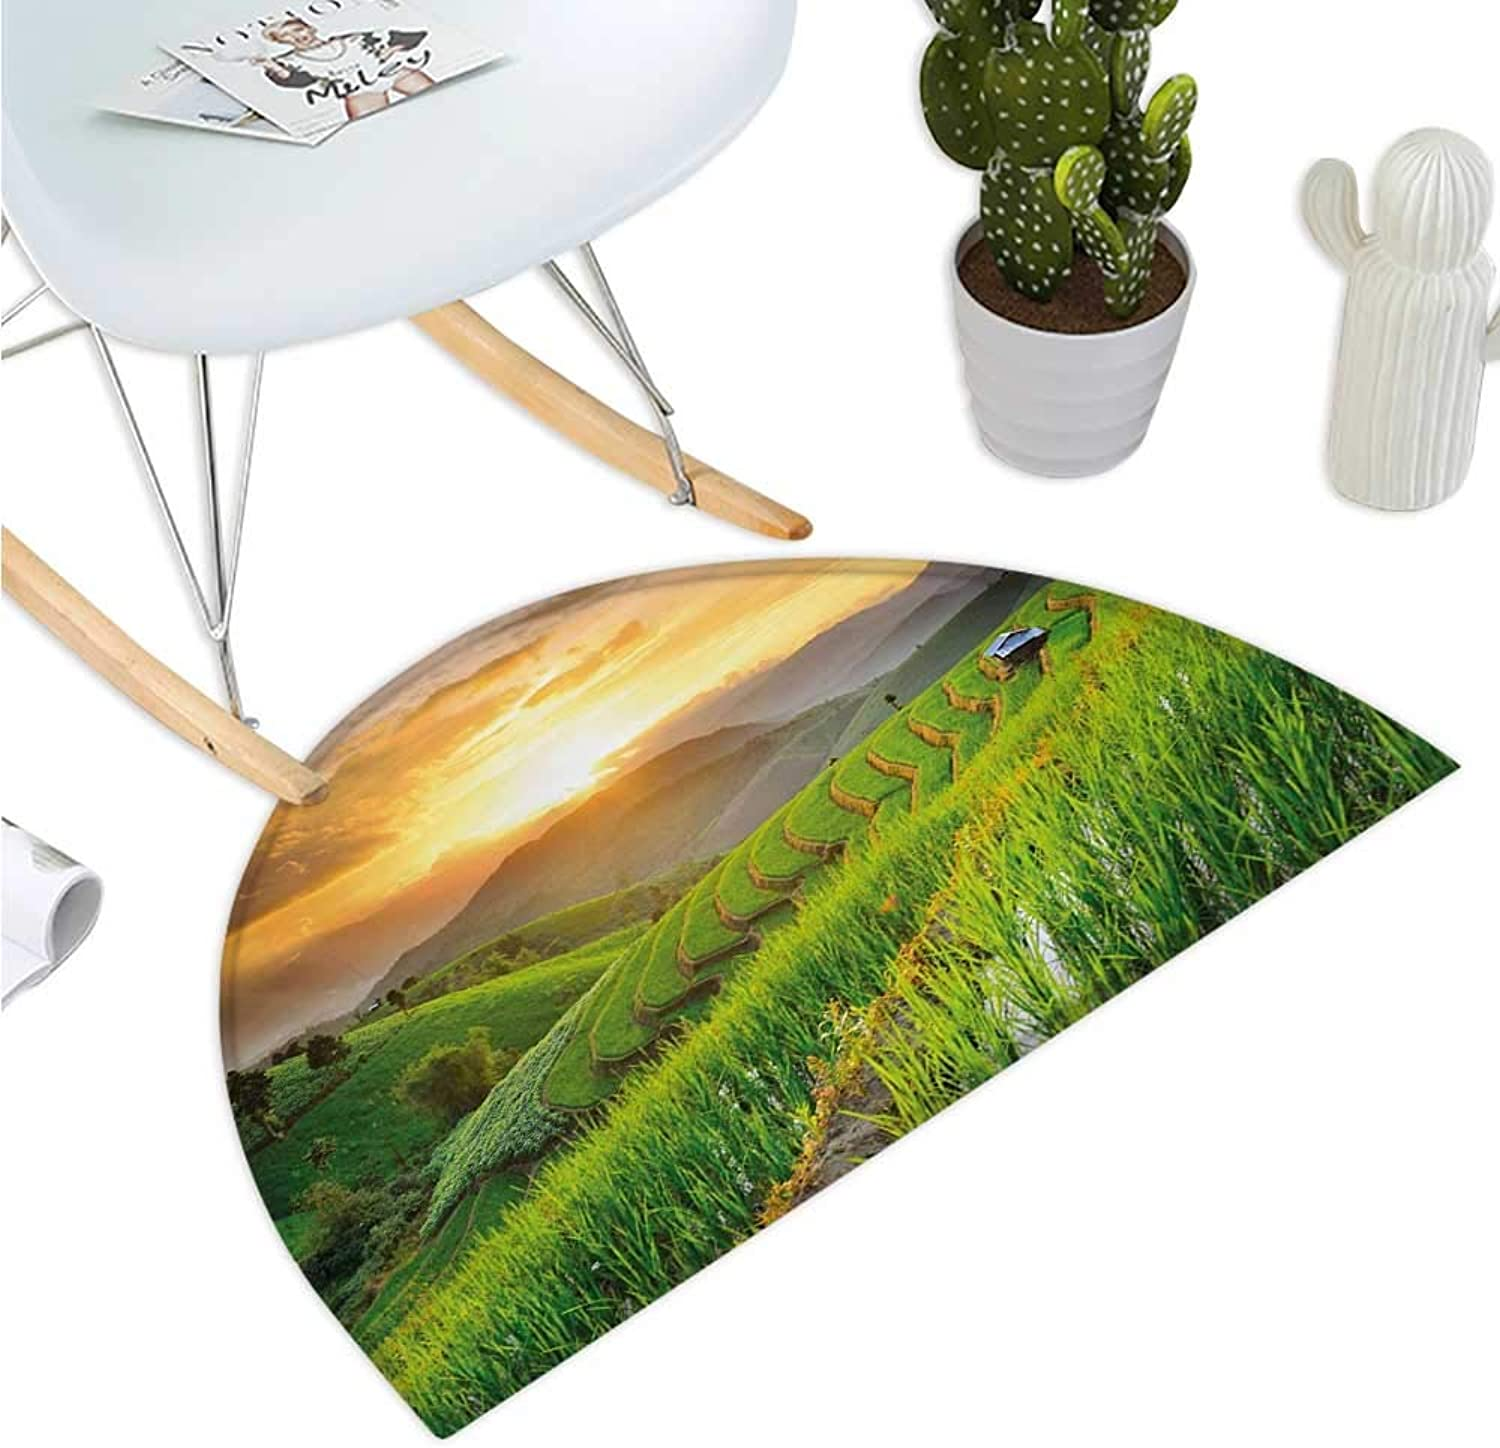 Country Semicircle Doormat Landscape of Rice Farm Terrace During Sunset in Thailand Image Photograph Print Halfmoon doormats H 39.3  xD 59  Multicolor